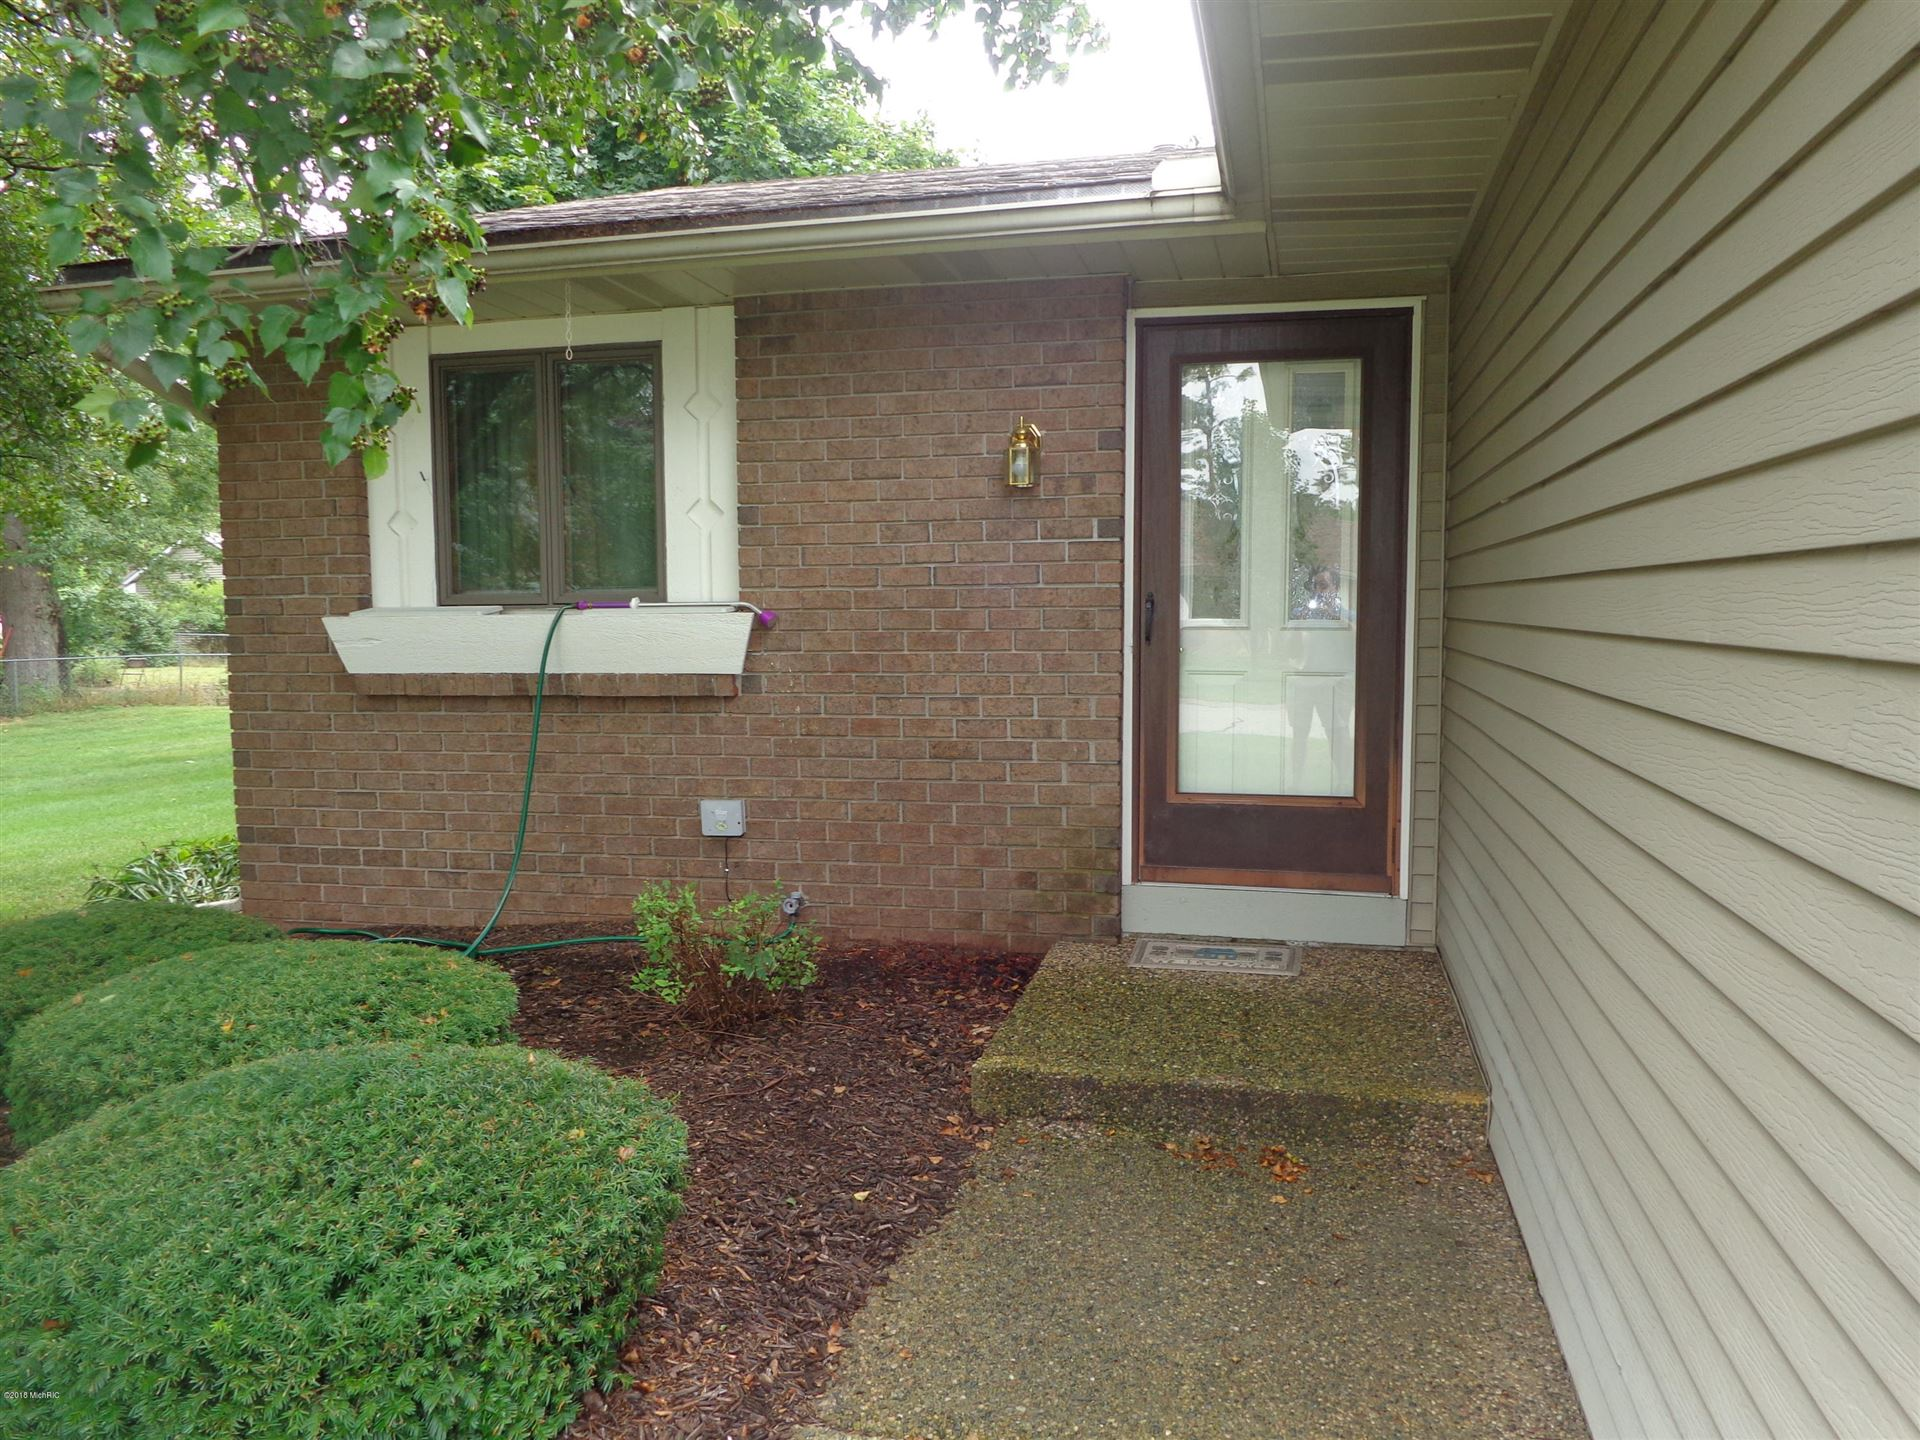 934 Laketown Drive #1, Holland, MI 49423 - MLS#: 18038764